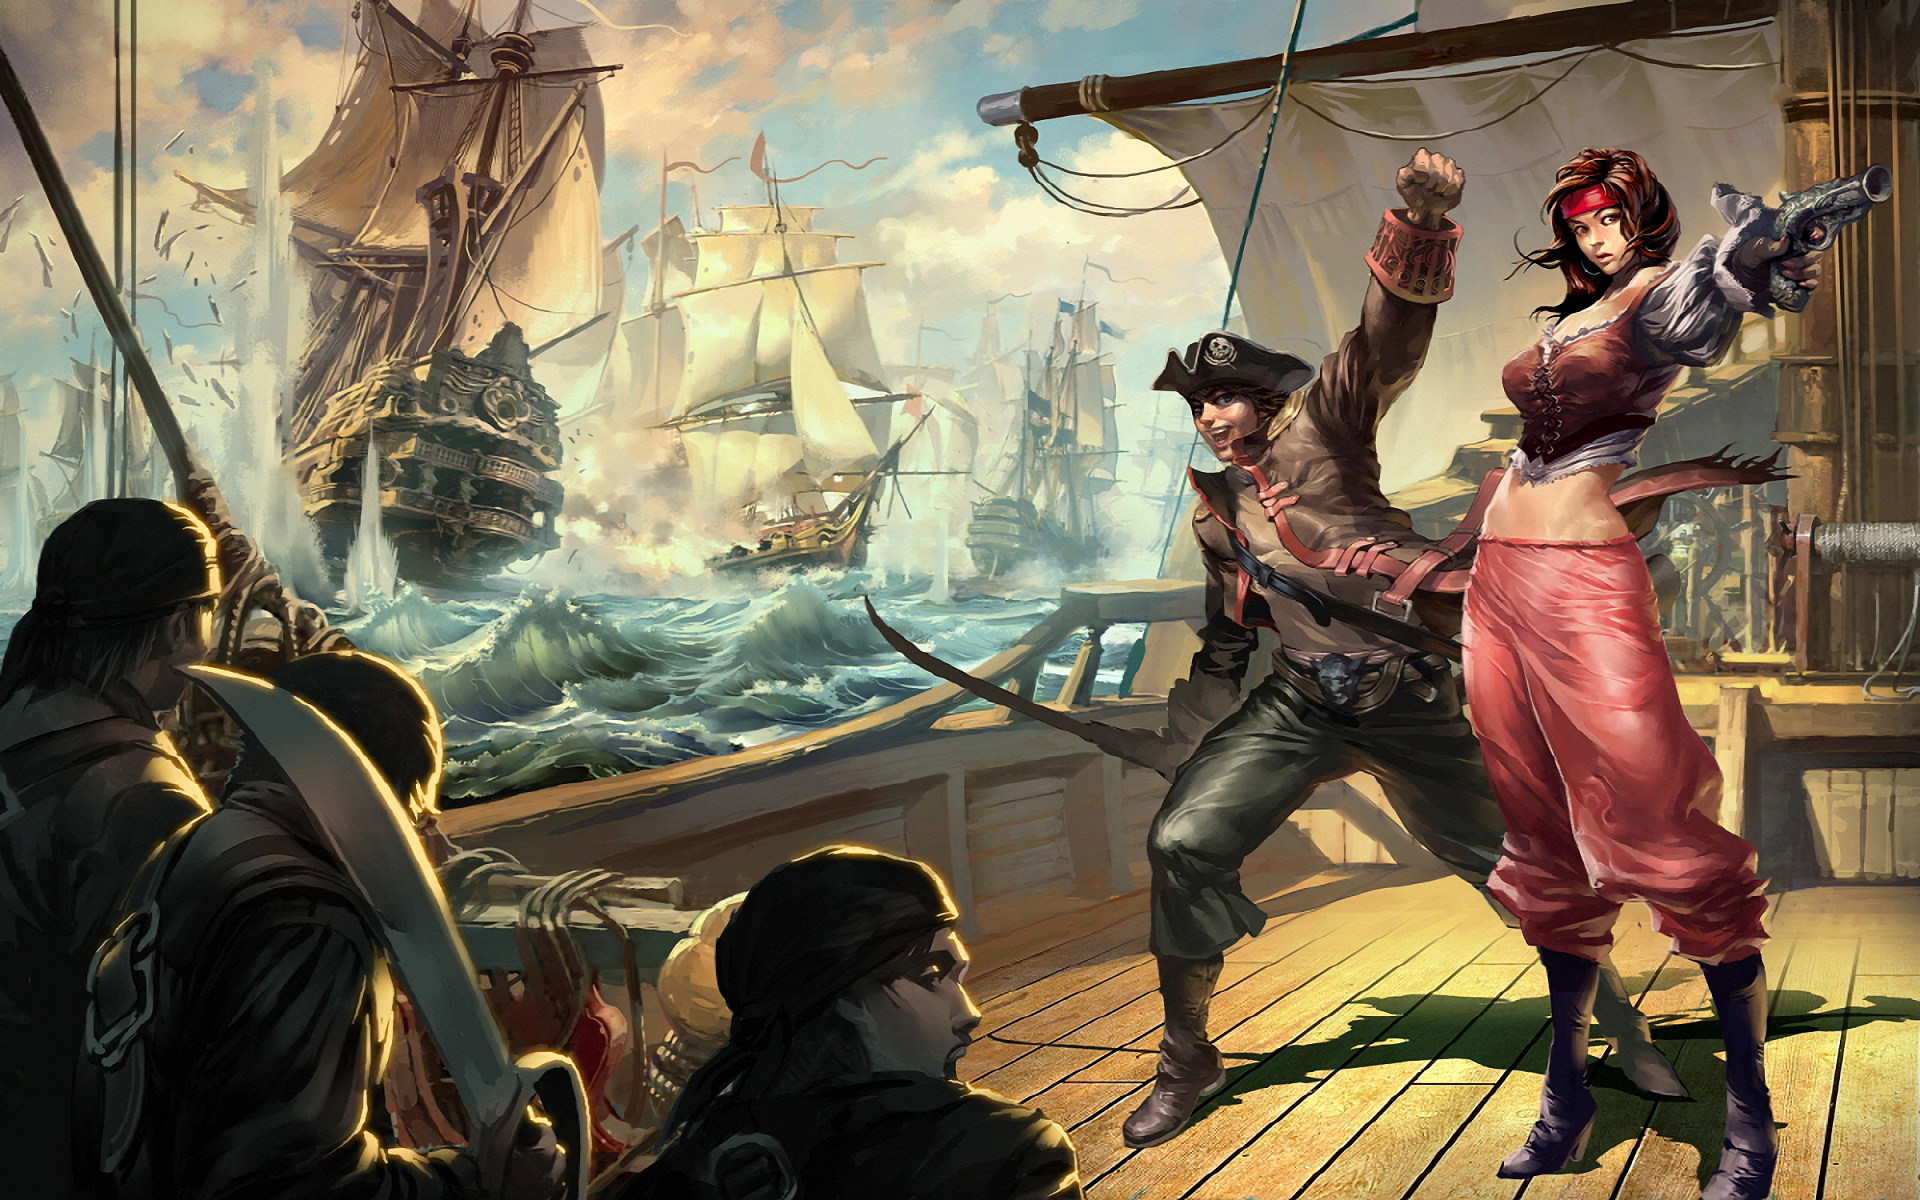 pirate wallpaper 1600x900 - photo #30